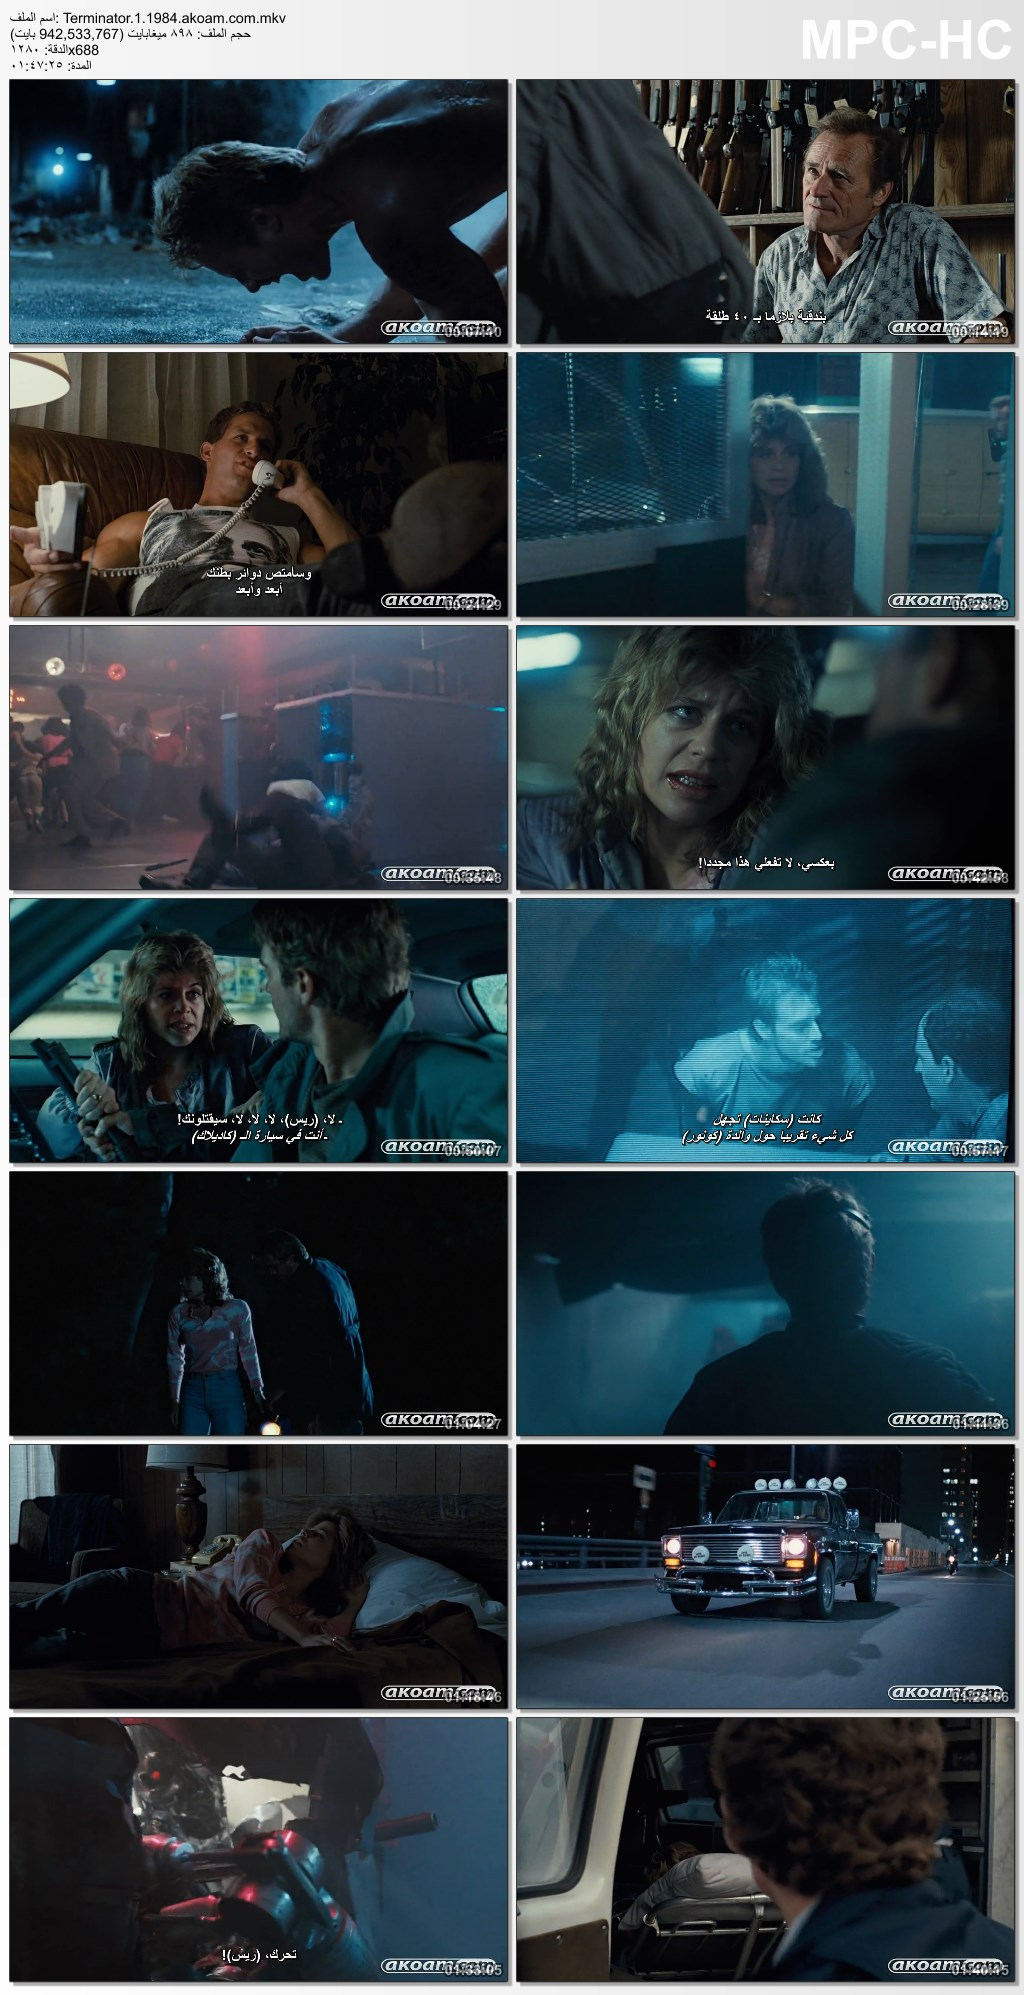 Terminator,المدمر,The Terminator,Terminator 2: Judgment Day,Terminator 3: Rise of the Machines,Terminator Salvation,Terminator Genisys